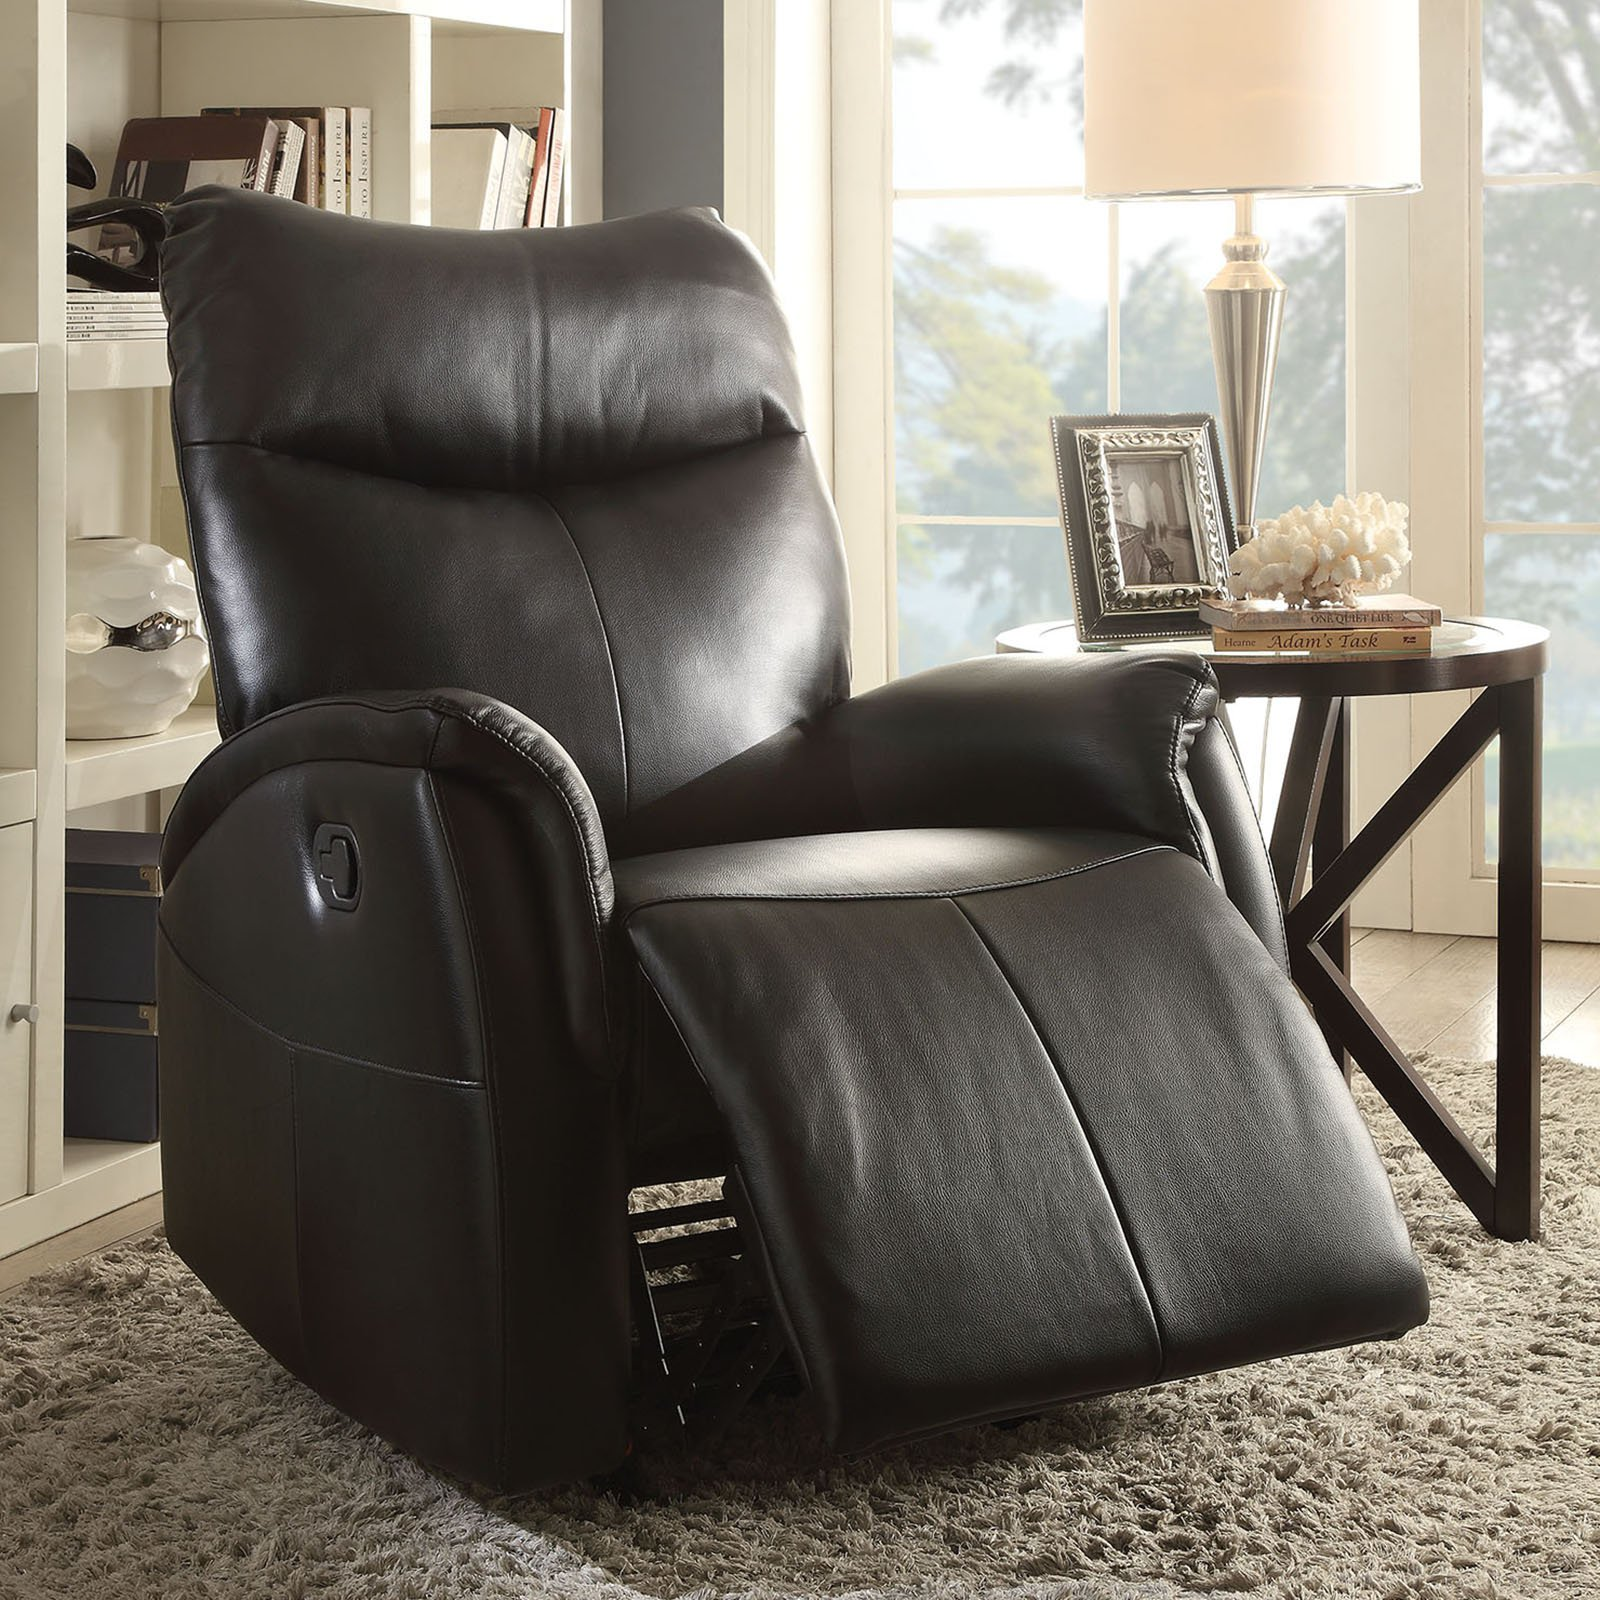 ACME Riso Rocker Recliner, Multiple Colors by Acme Furniture